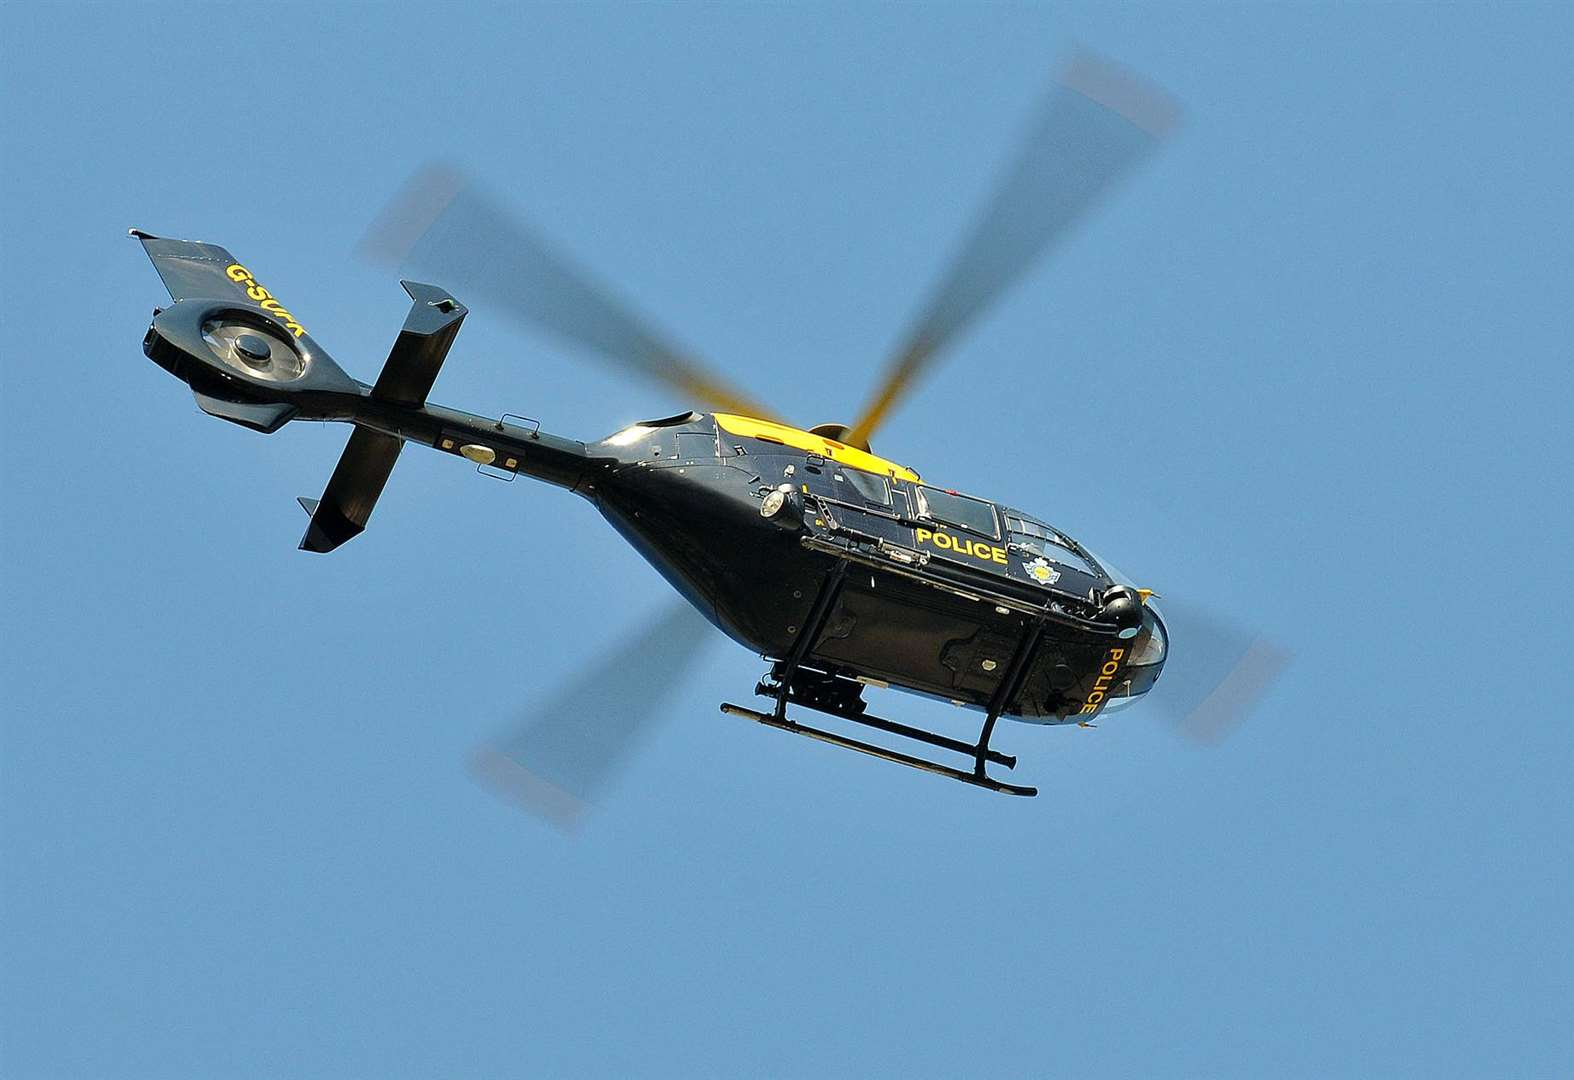 Helicopter searches for runaway suspect